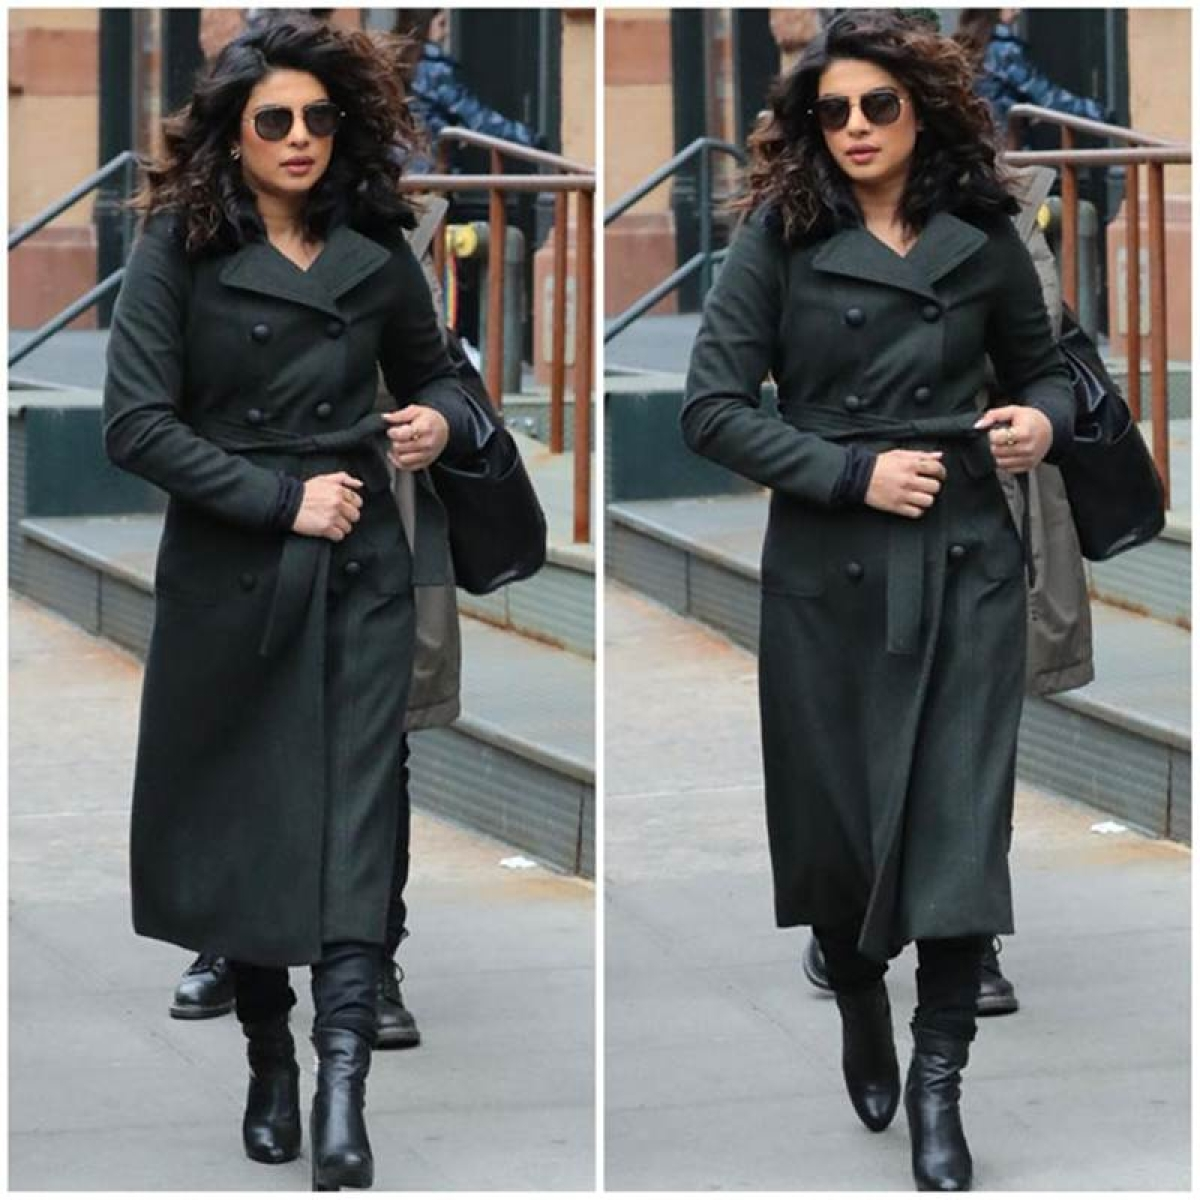 Priyanka Chopra is heavily armed on the sets of 'Quantico 3' in NYC